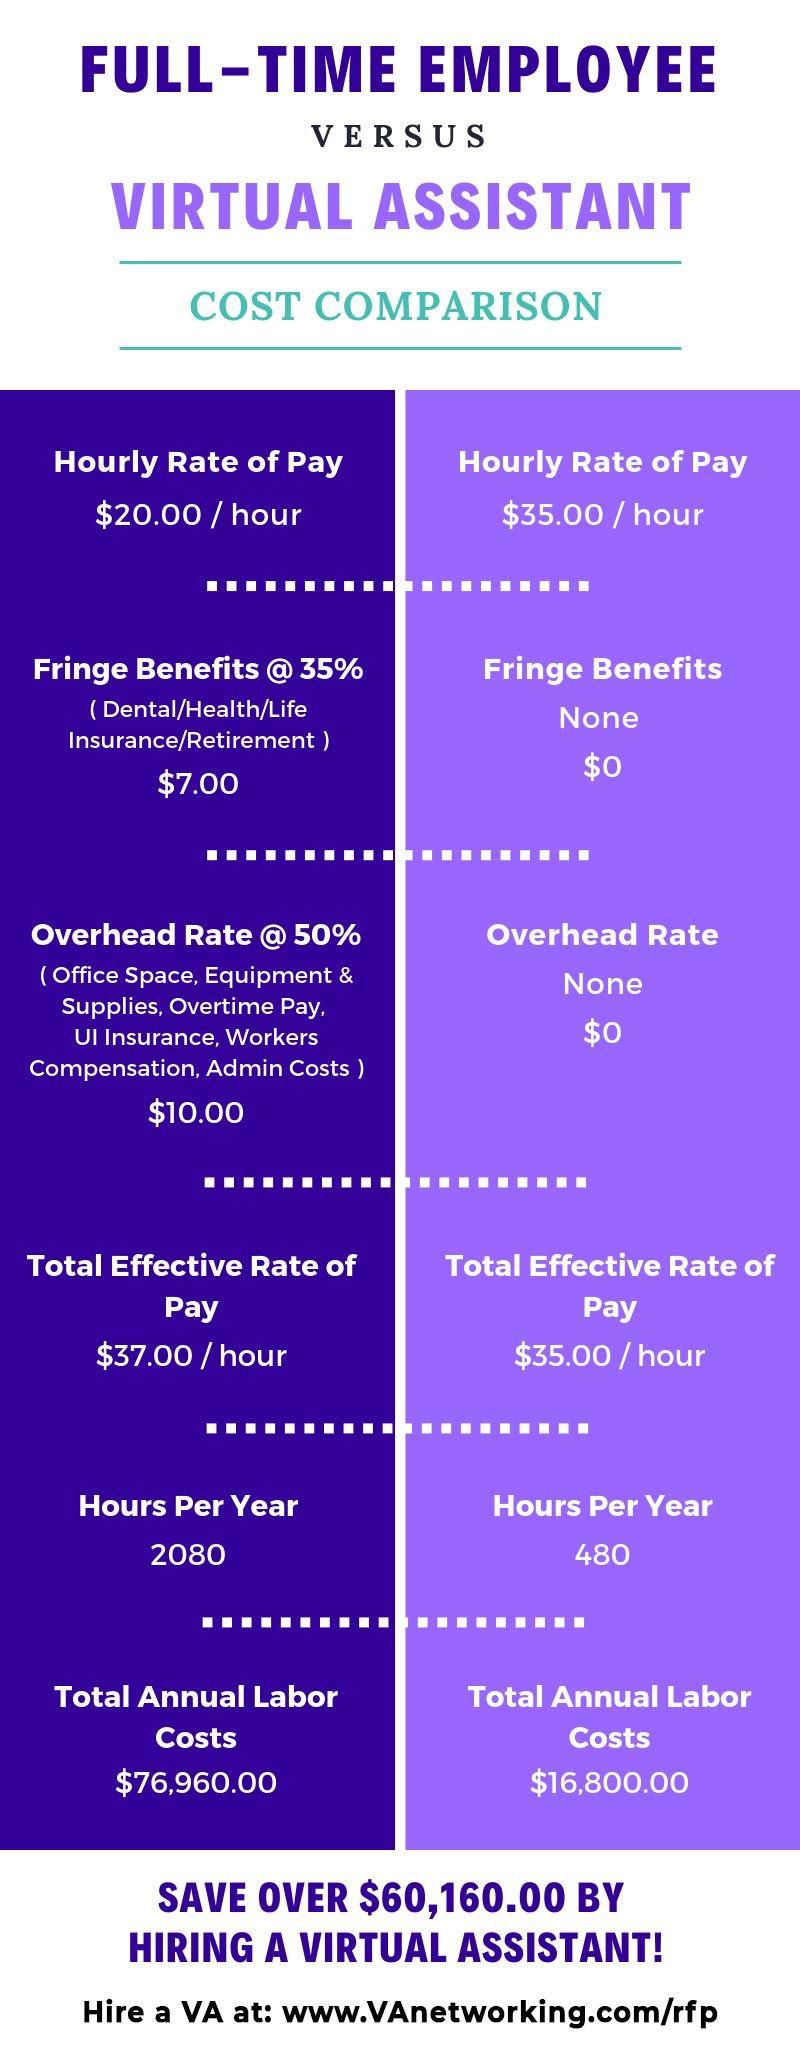 A cost comparison for a full-time employee versus a Virtual Assistant